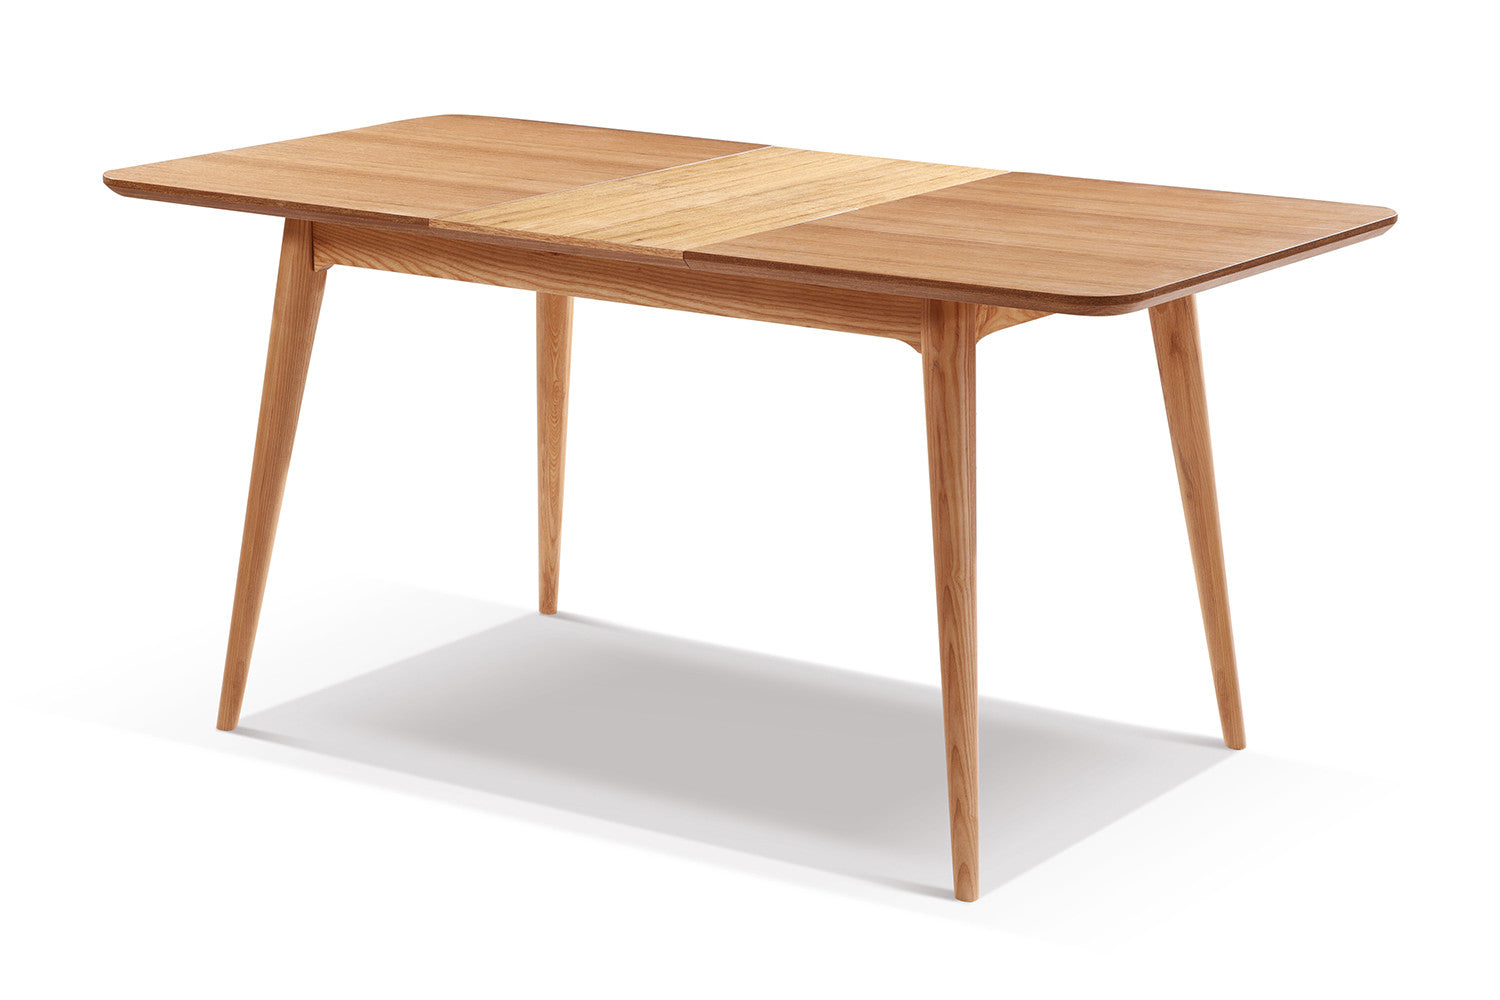 Table de salle manger extensible en bois adda dewarens for Table salle a manger rectangulaire extensible